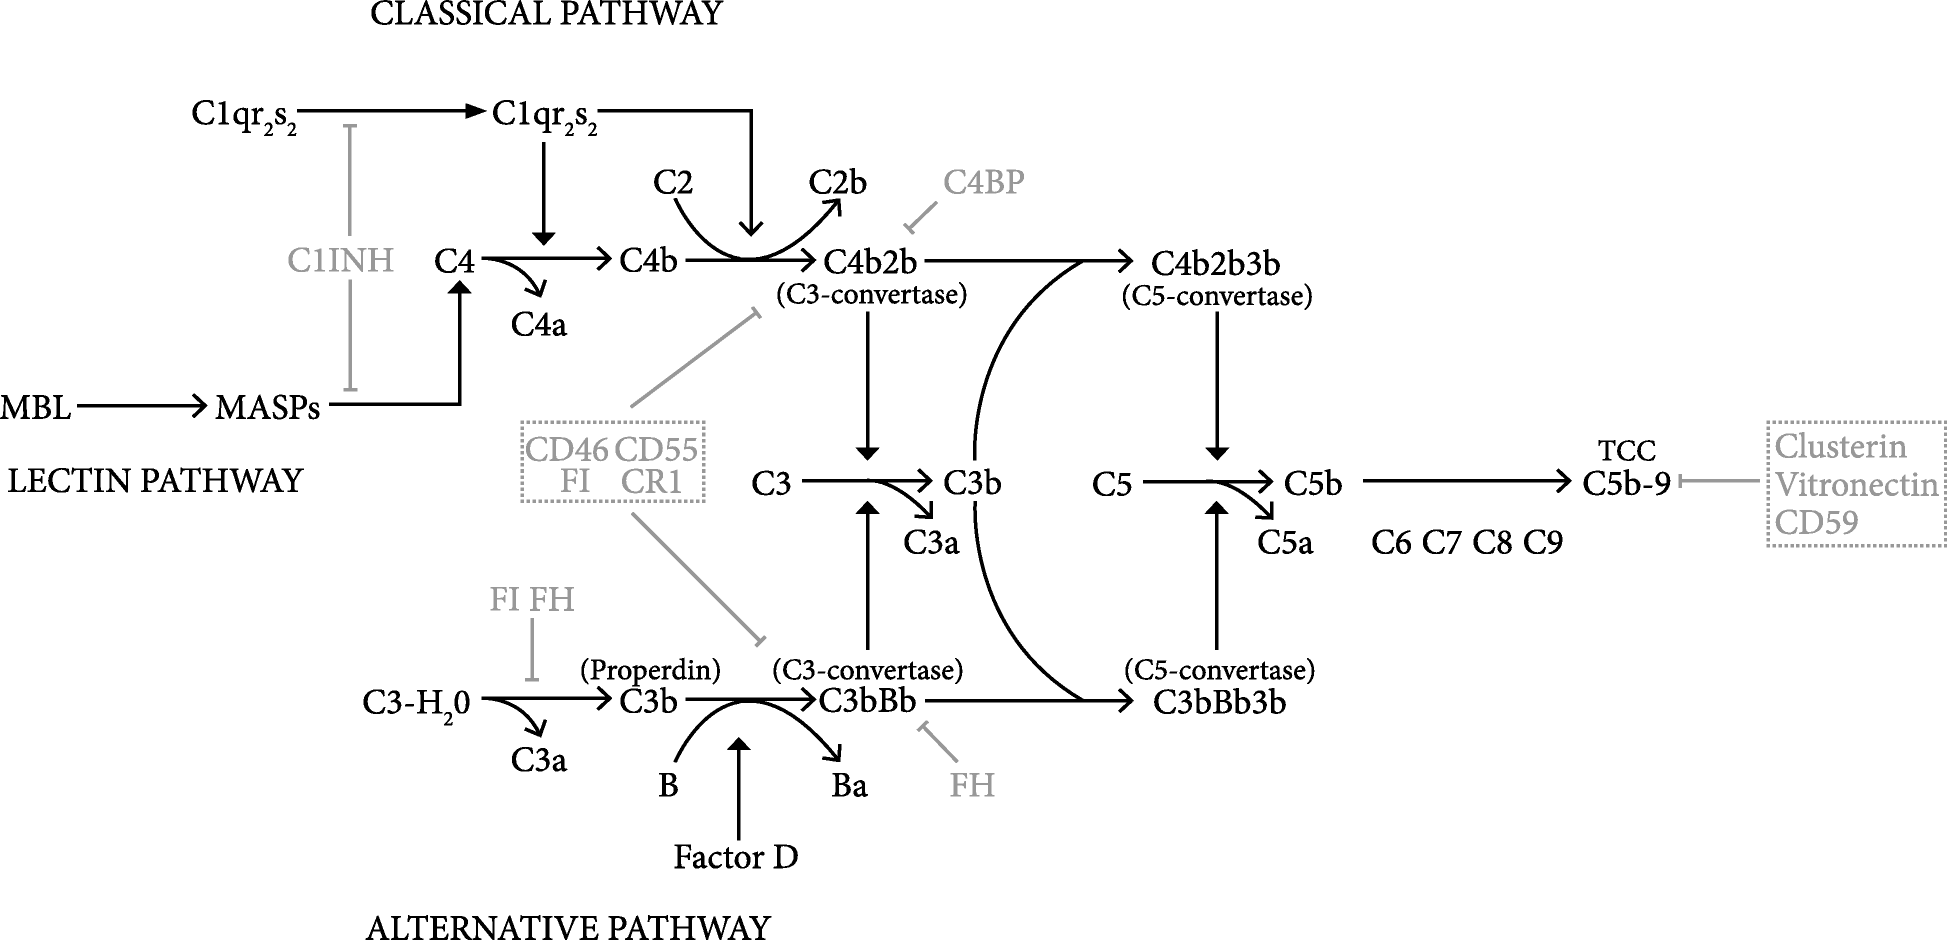 The Complement System In Glioblastoma Multiforme Acta 2 S Circuit Diagram Fig 1 Schematic And Simplified Representation Of